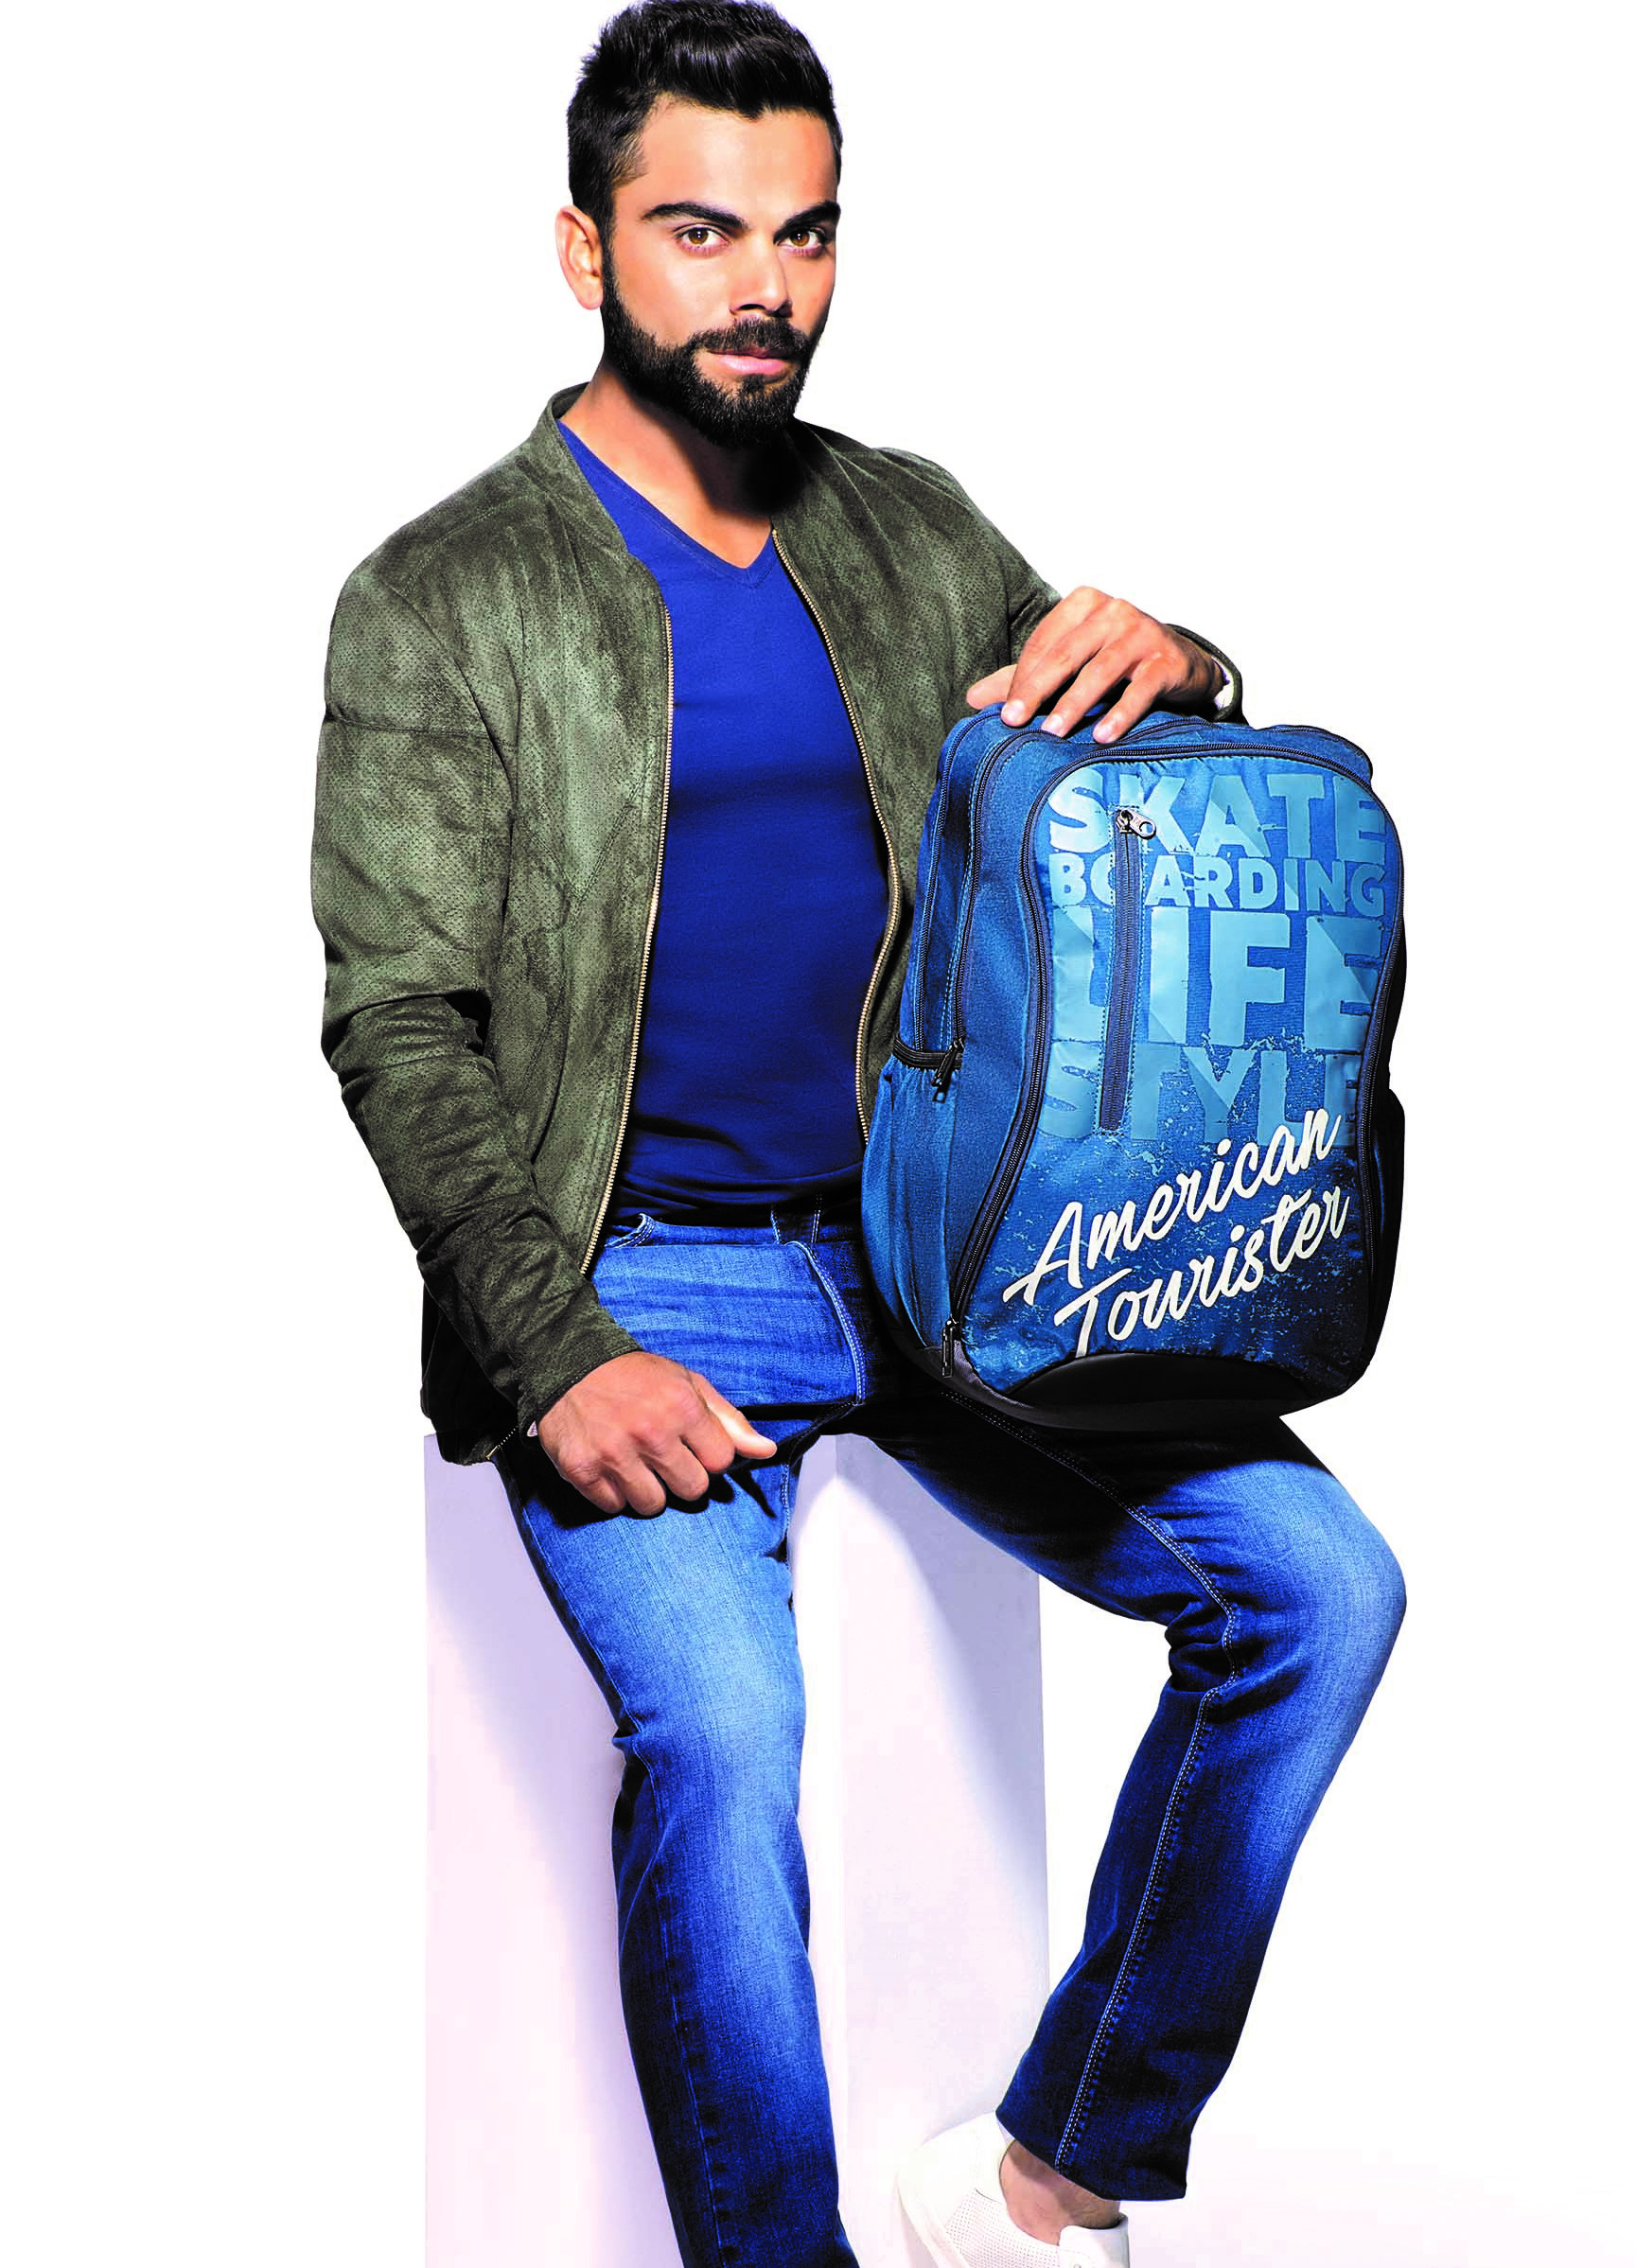 Virat Kohli Bats For American Tourister In The Middle East